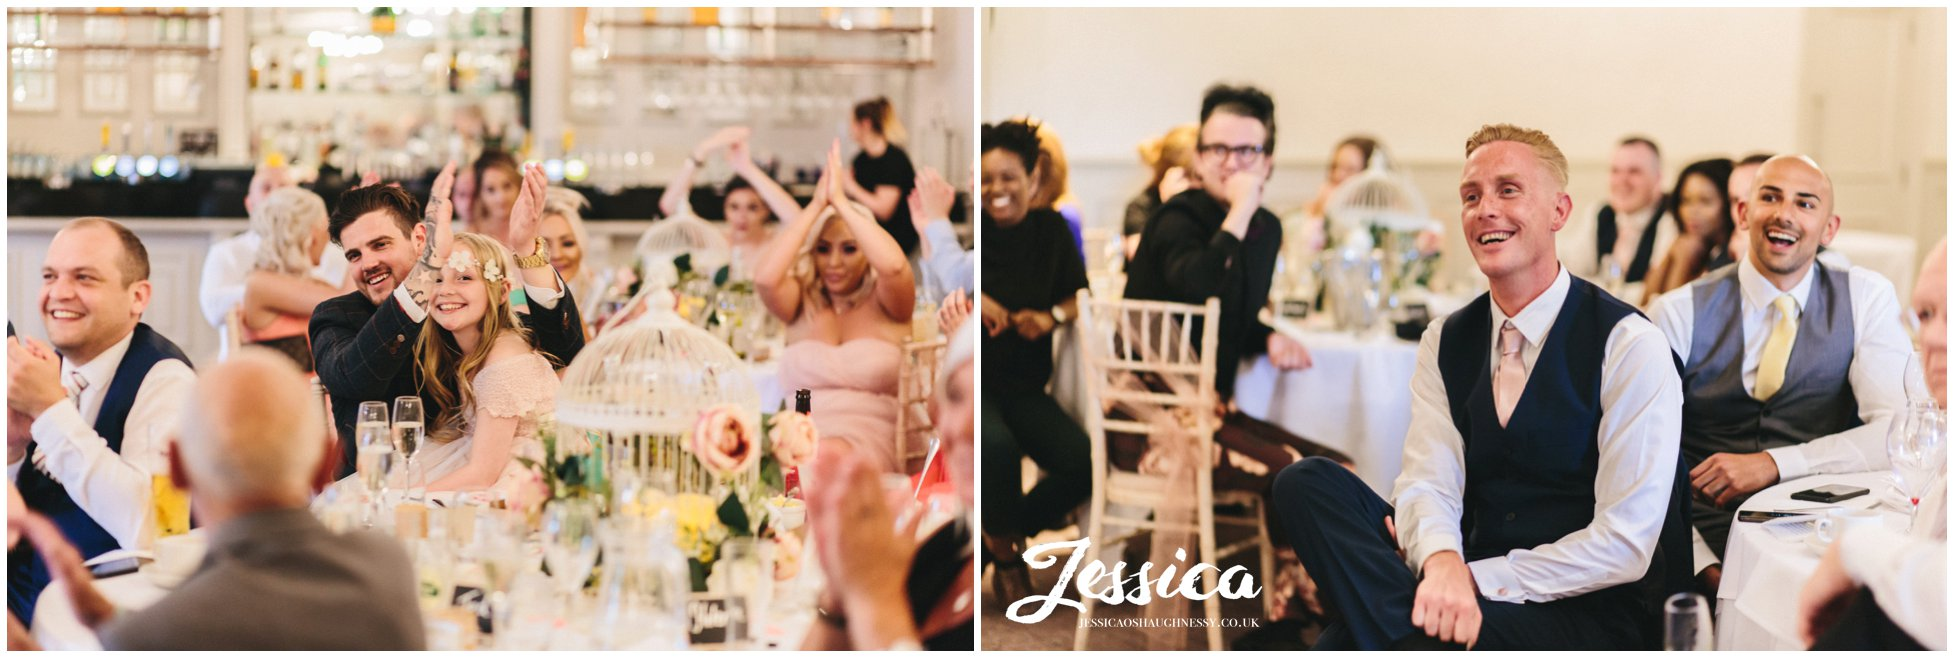 the best man and wedding guests clap after the speeches are over